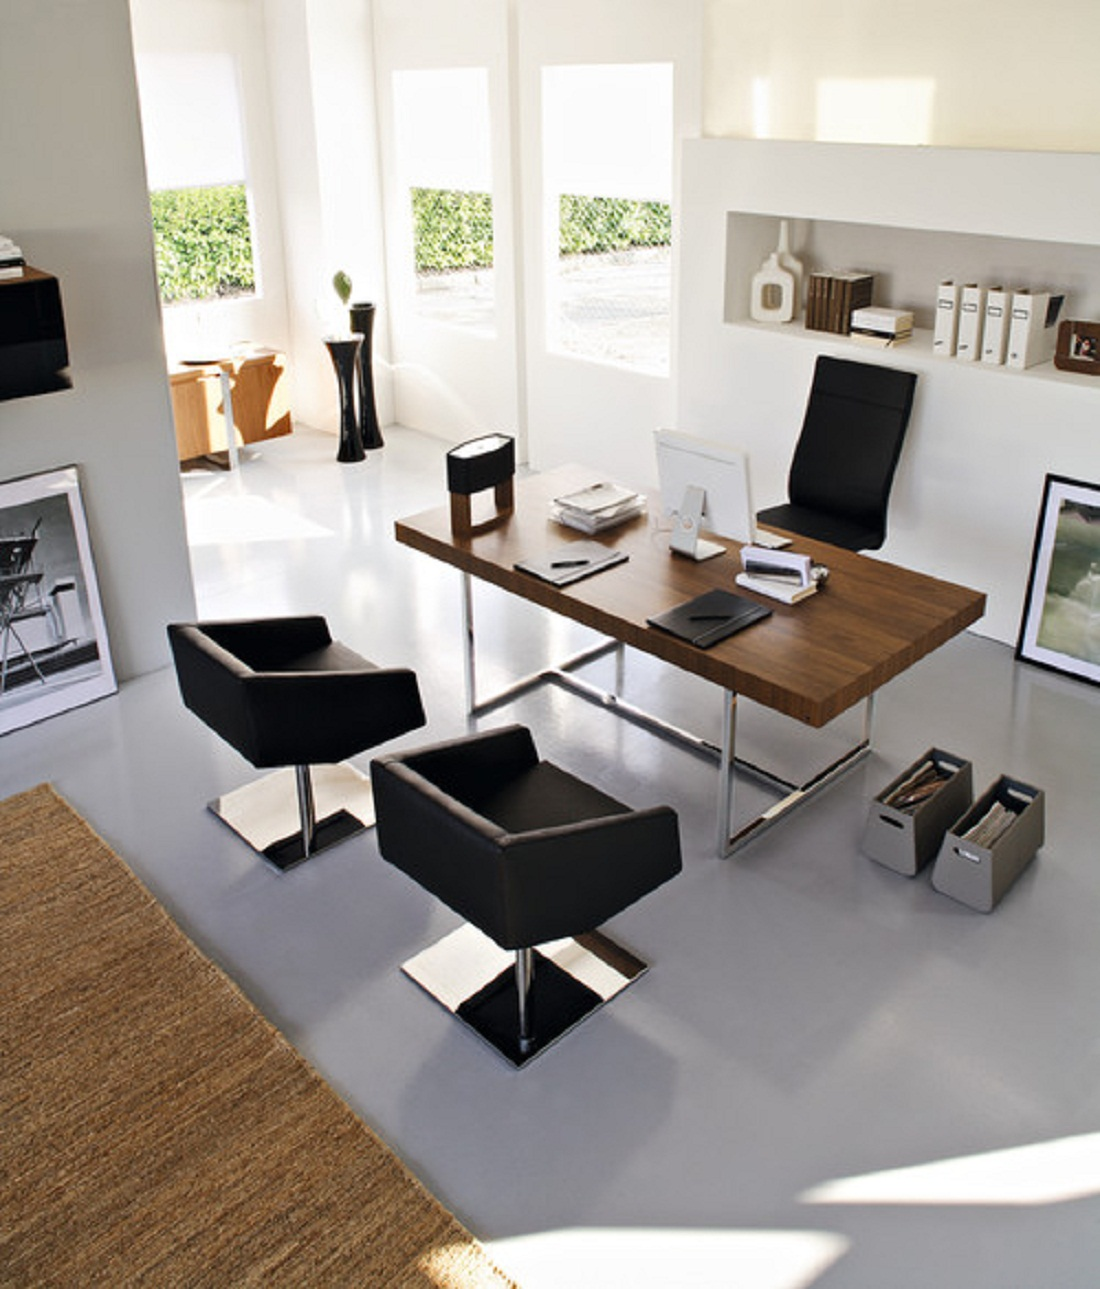 35 Modern Home Office Design Ideas: 35 Modern Home Office Design Ideas